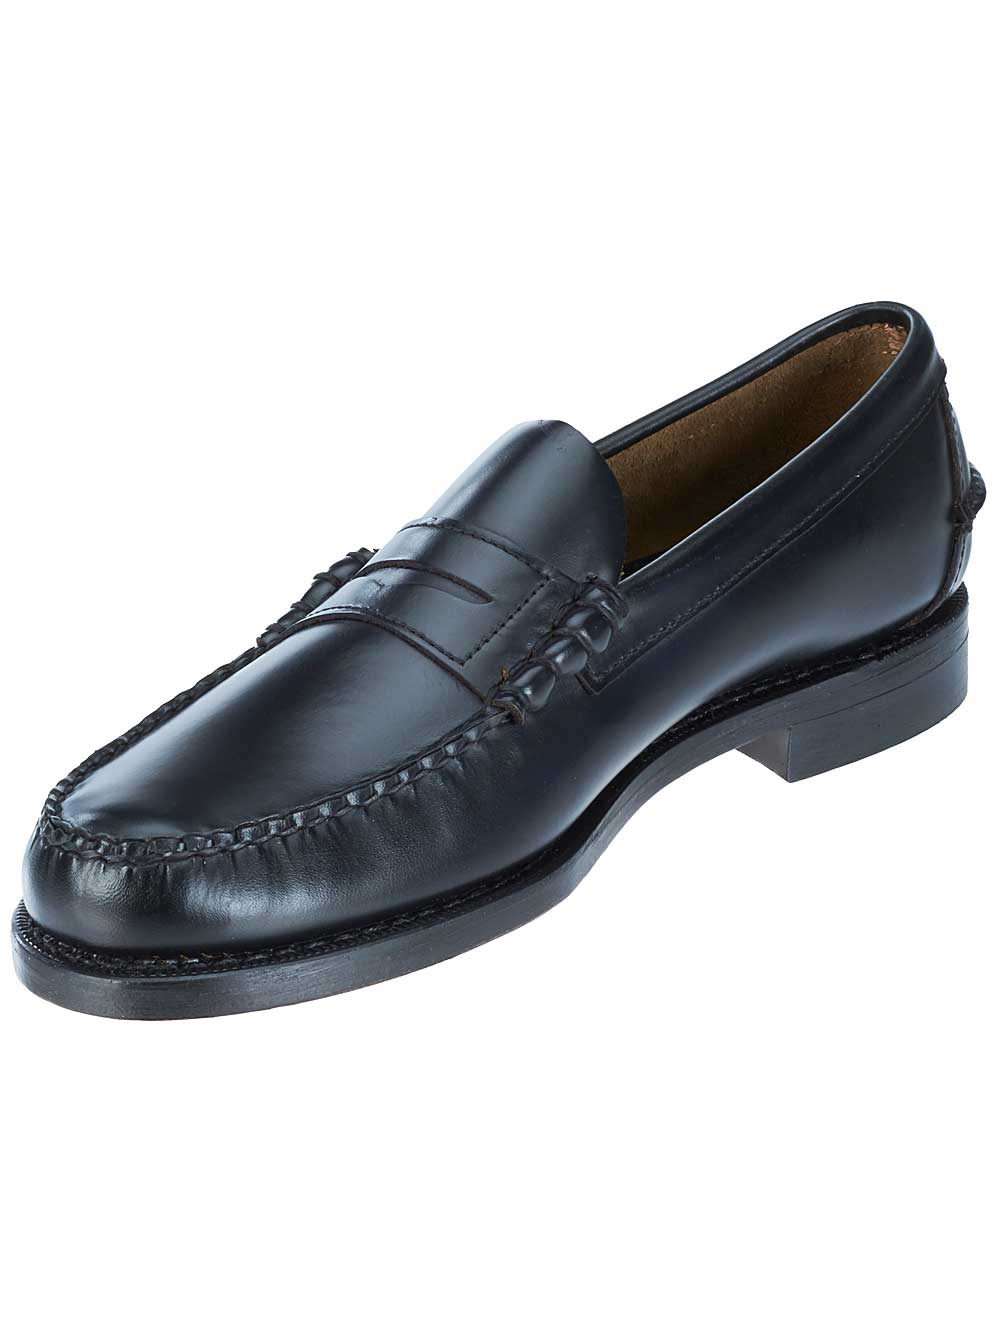 Sebago Mens Classic Loafers in Black by Wolverine World Wide